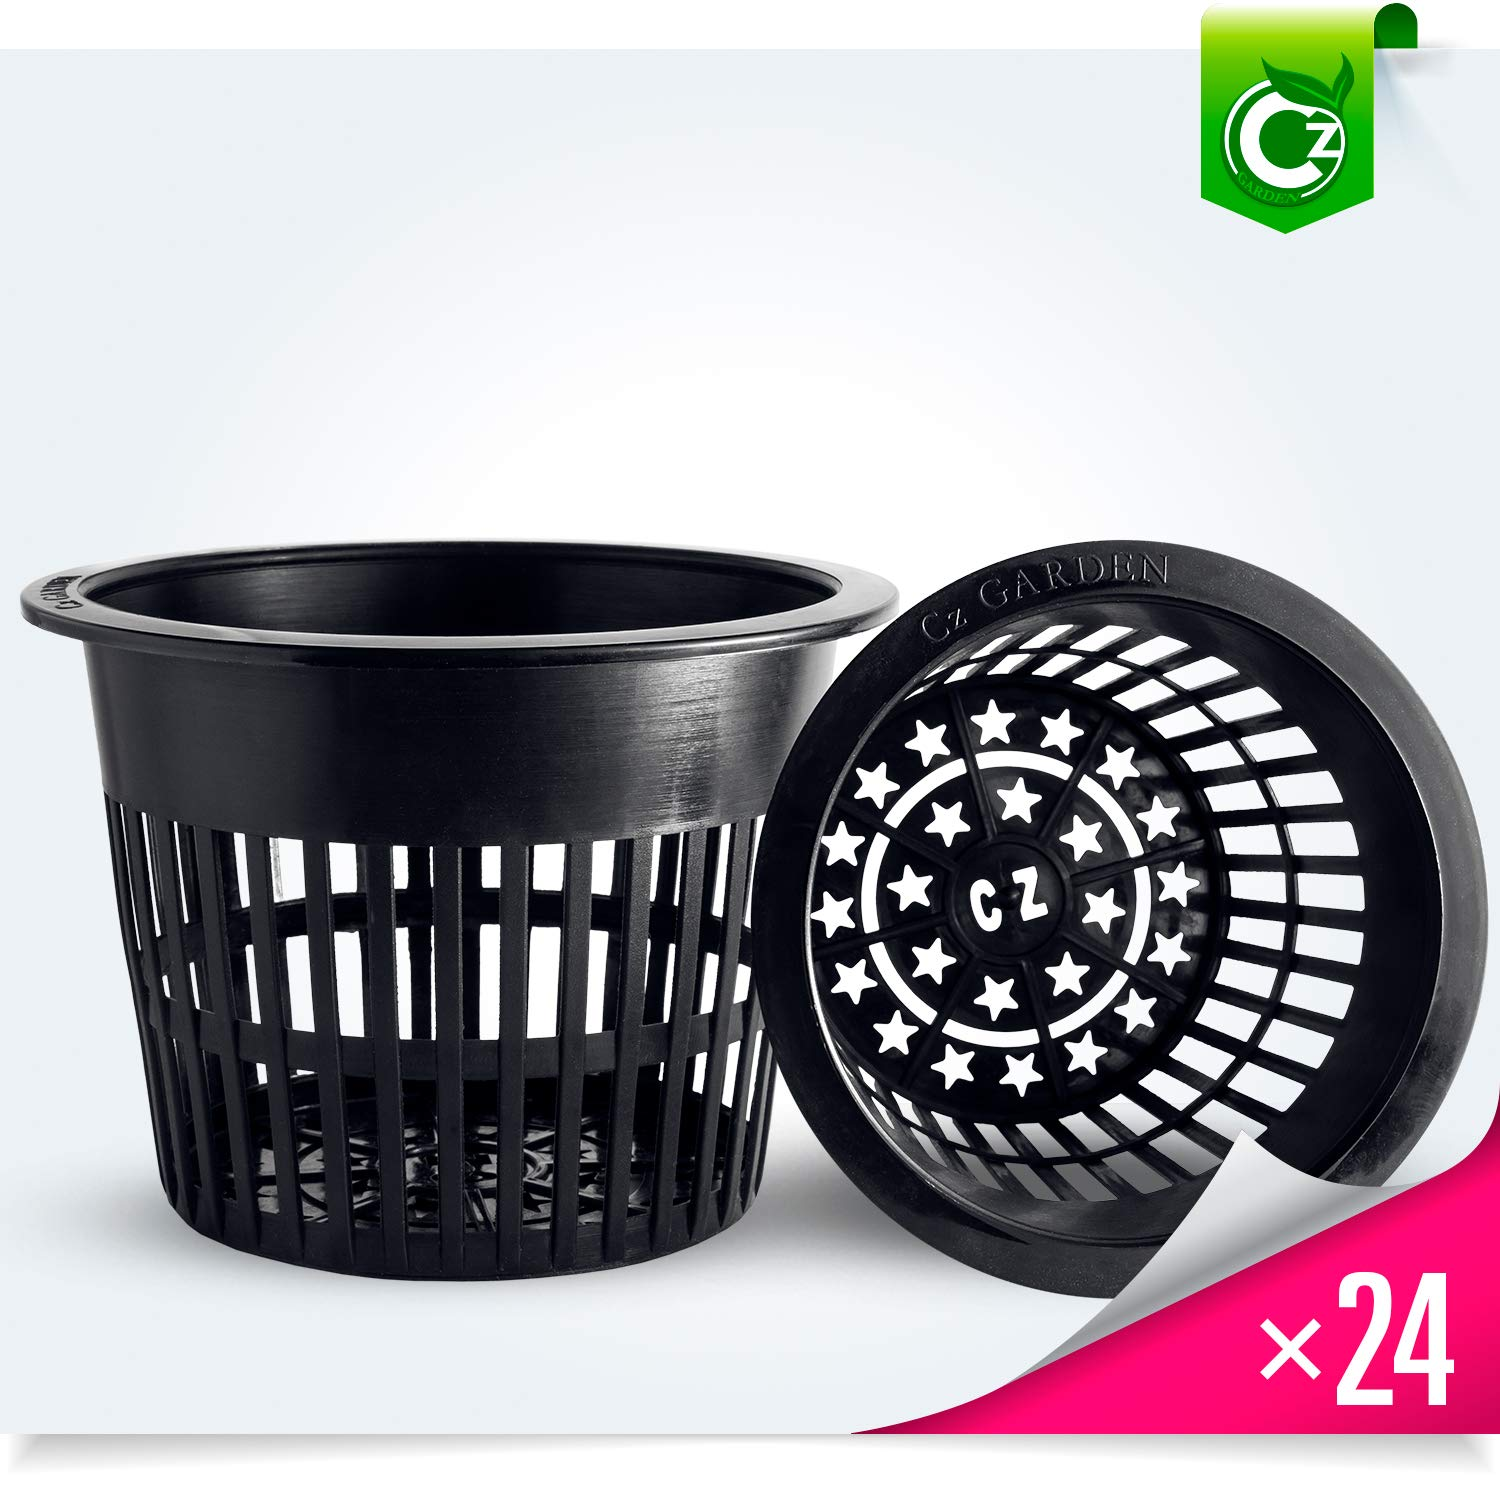 5 inch Net Pots Heavy Duty Round Cups Wide Rim Design – Orchids Aquaponics Aquaculture Hydroponics Slotted Mesh Cz All Star 24 Black Pots